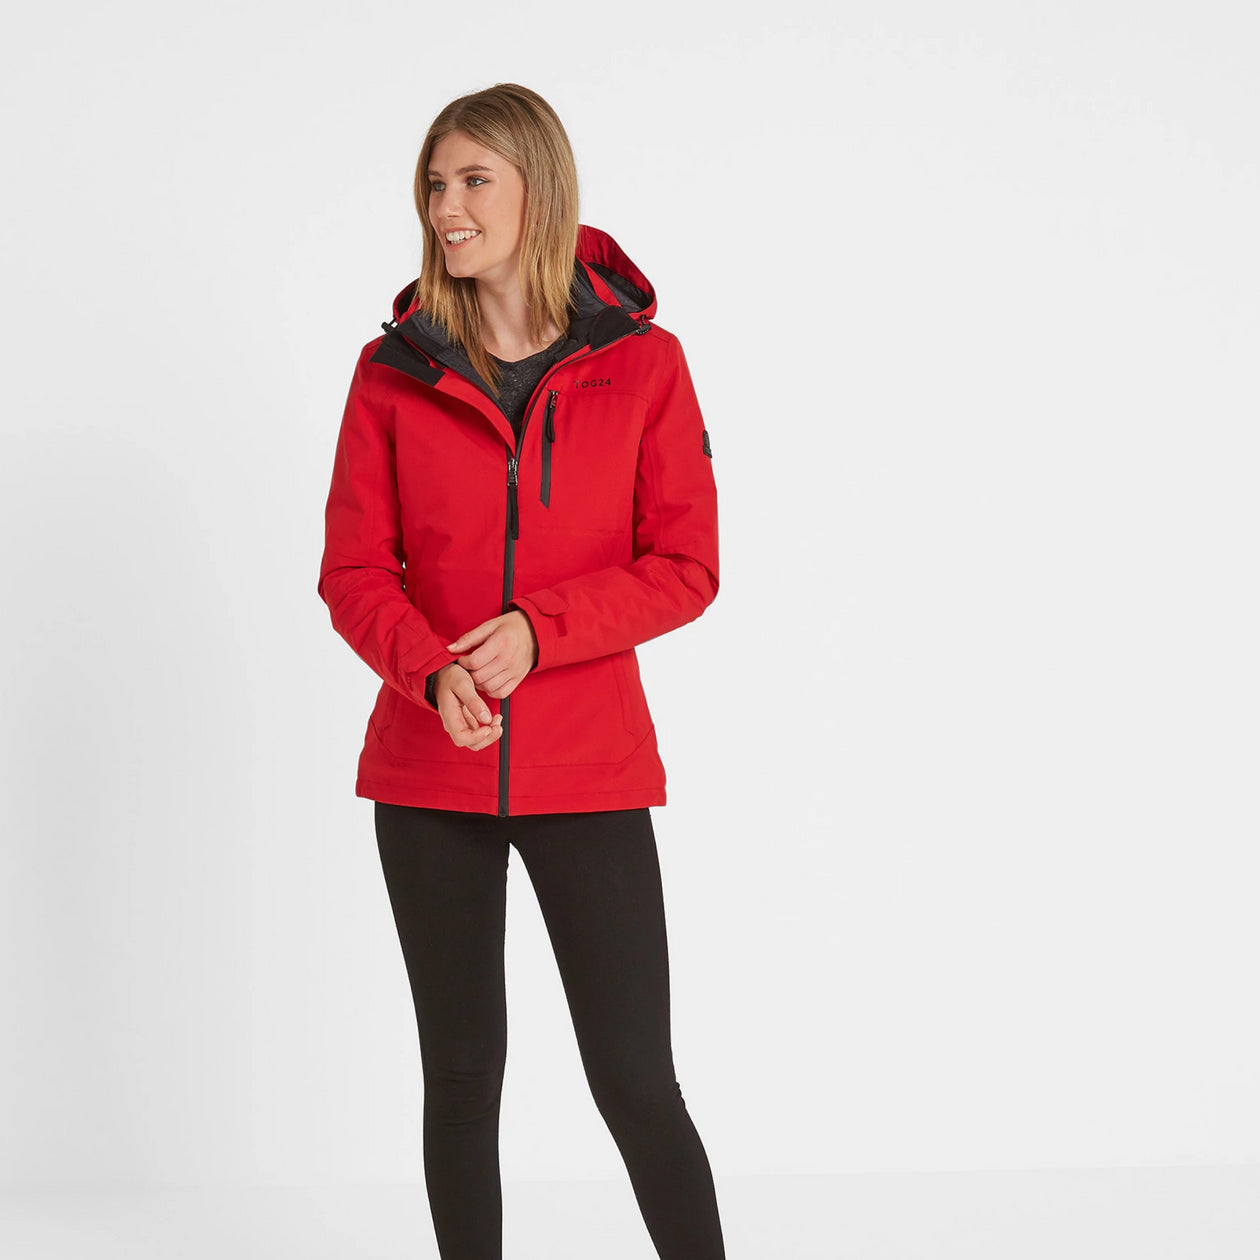 Beverley Womens Waterproof 3-In-1 Jacket - Rouge Red image 4